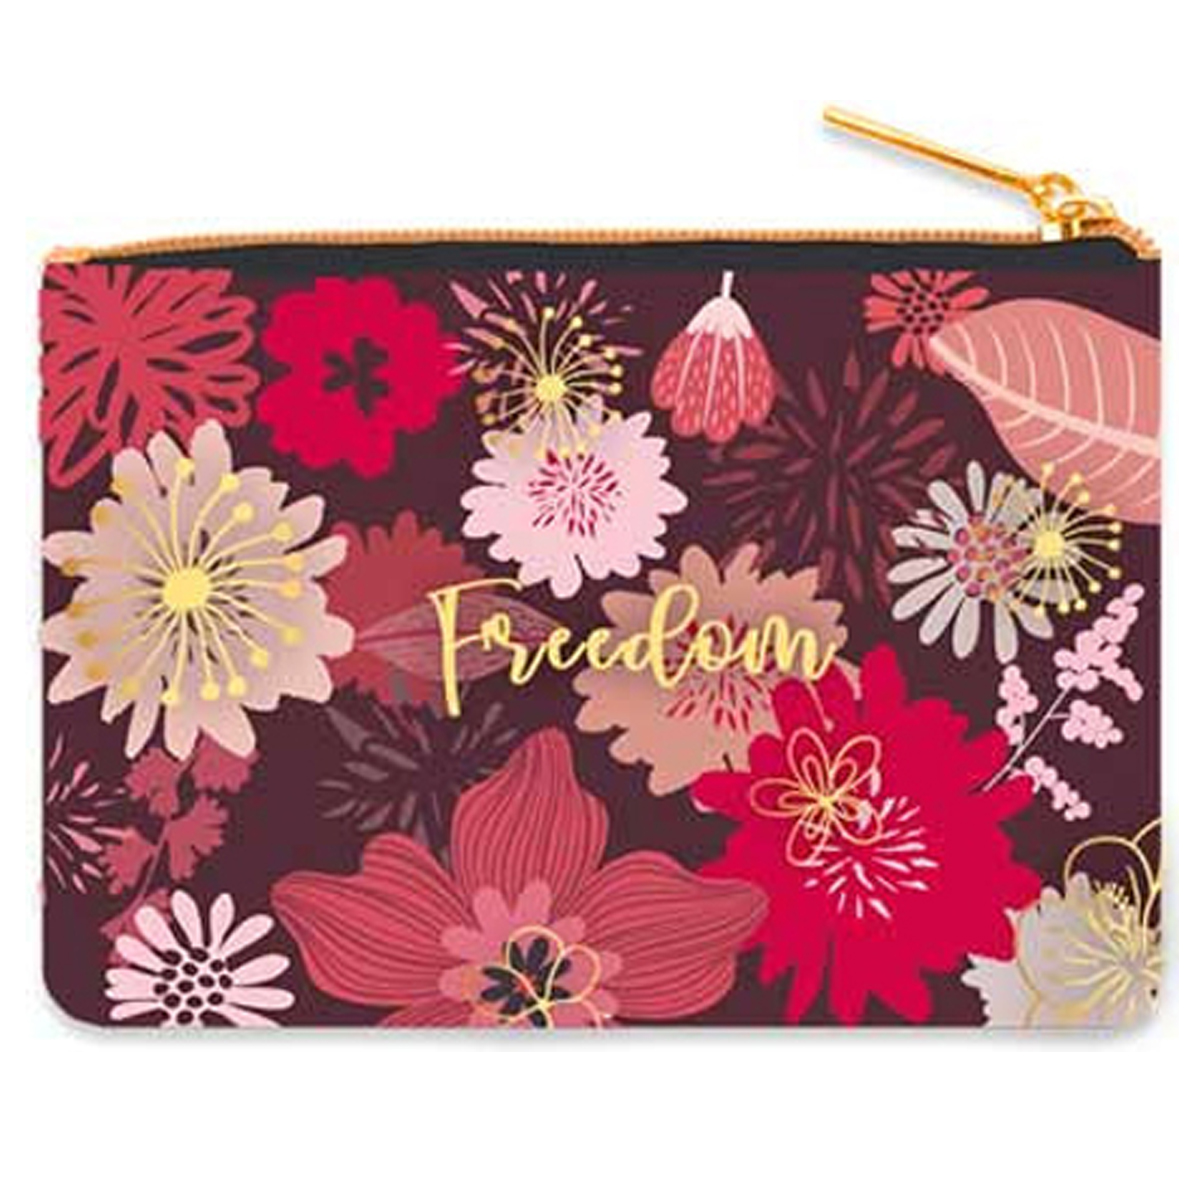 Trousse à maquillage velours \'Freedom\' rose - 20x15 cm - [R0446]